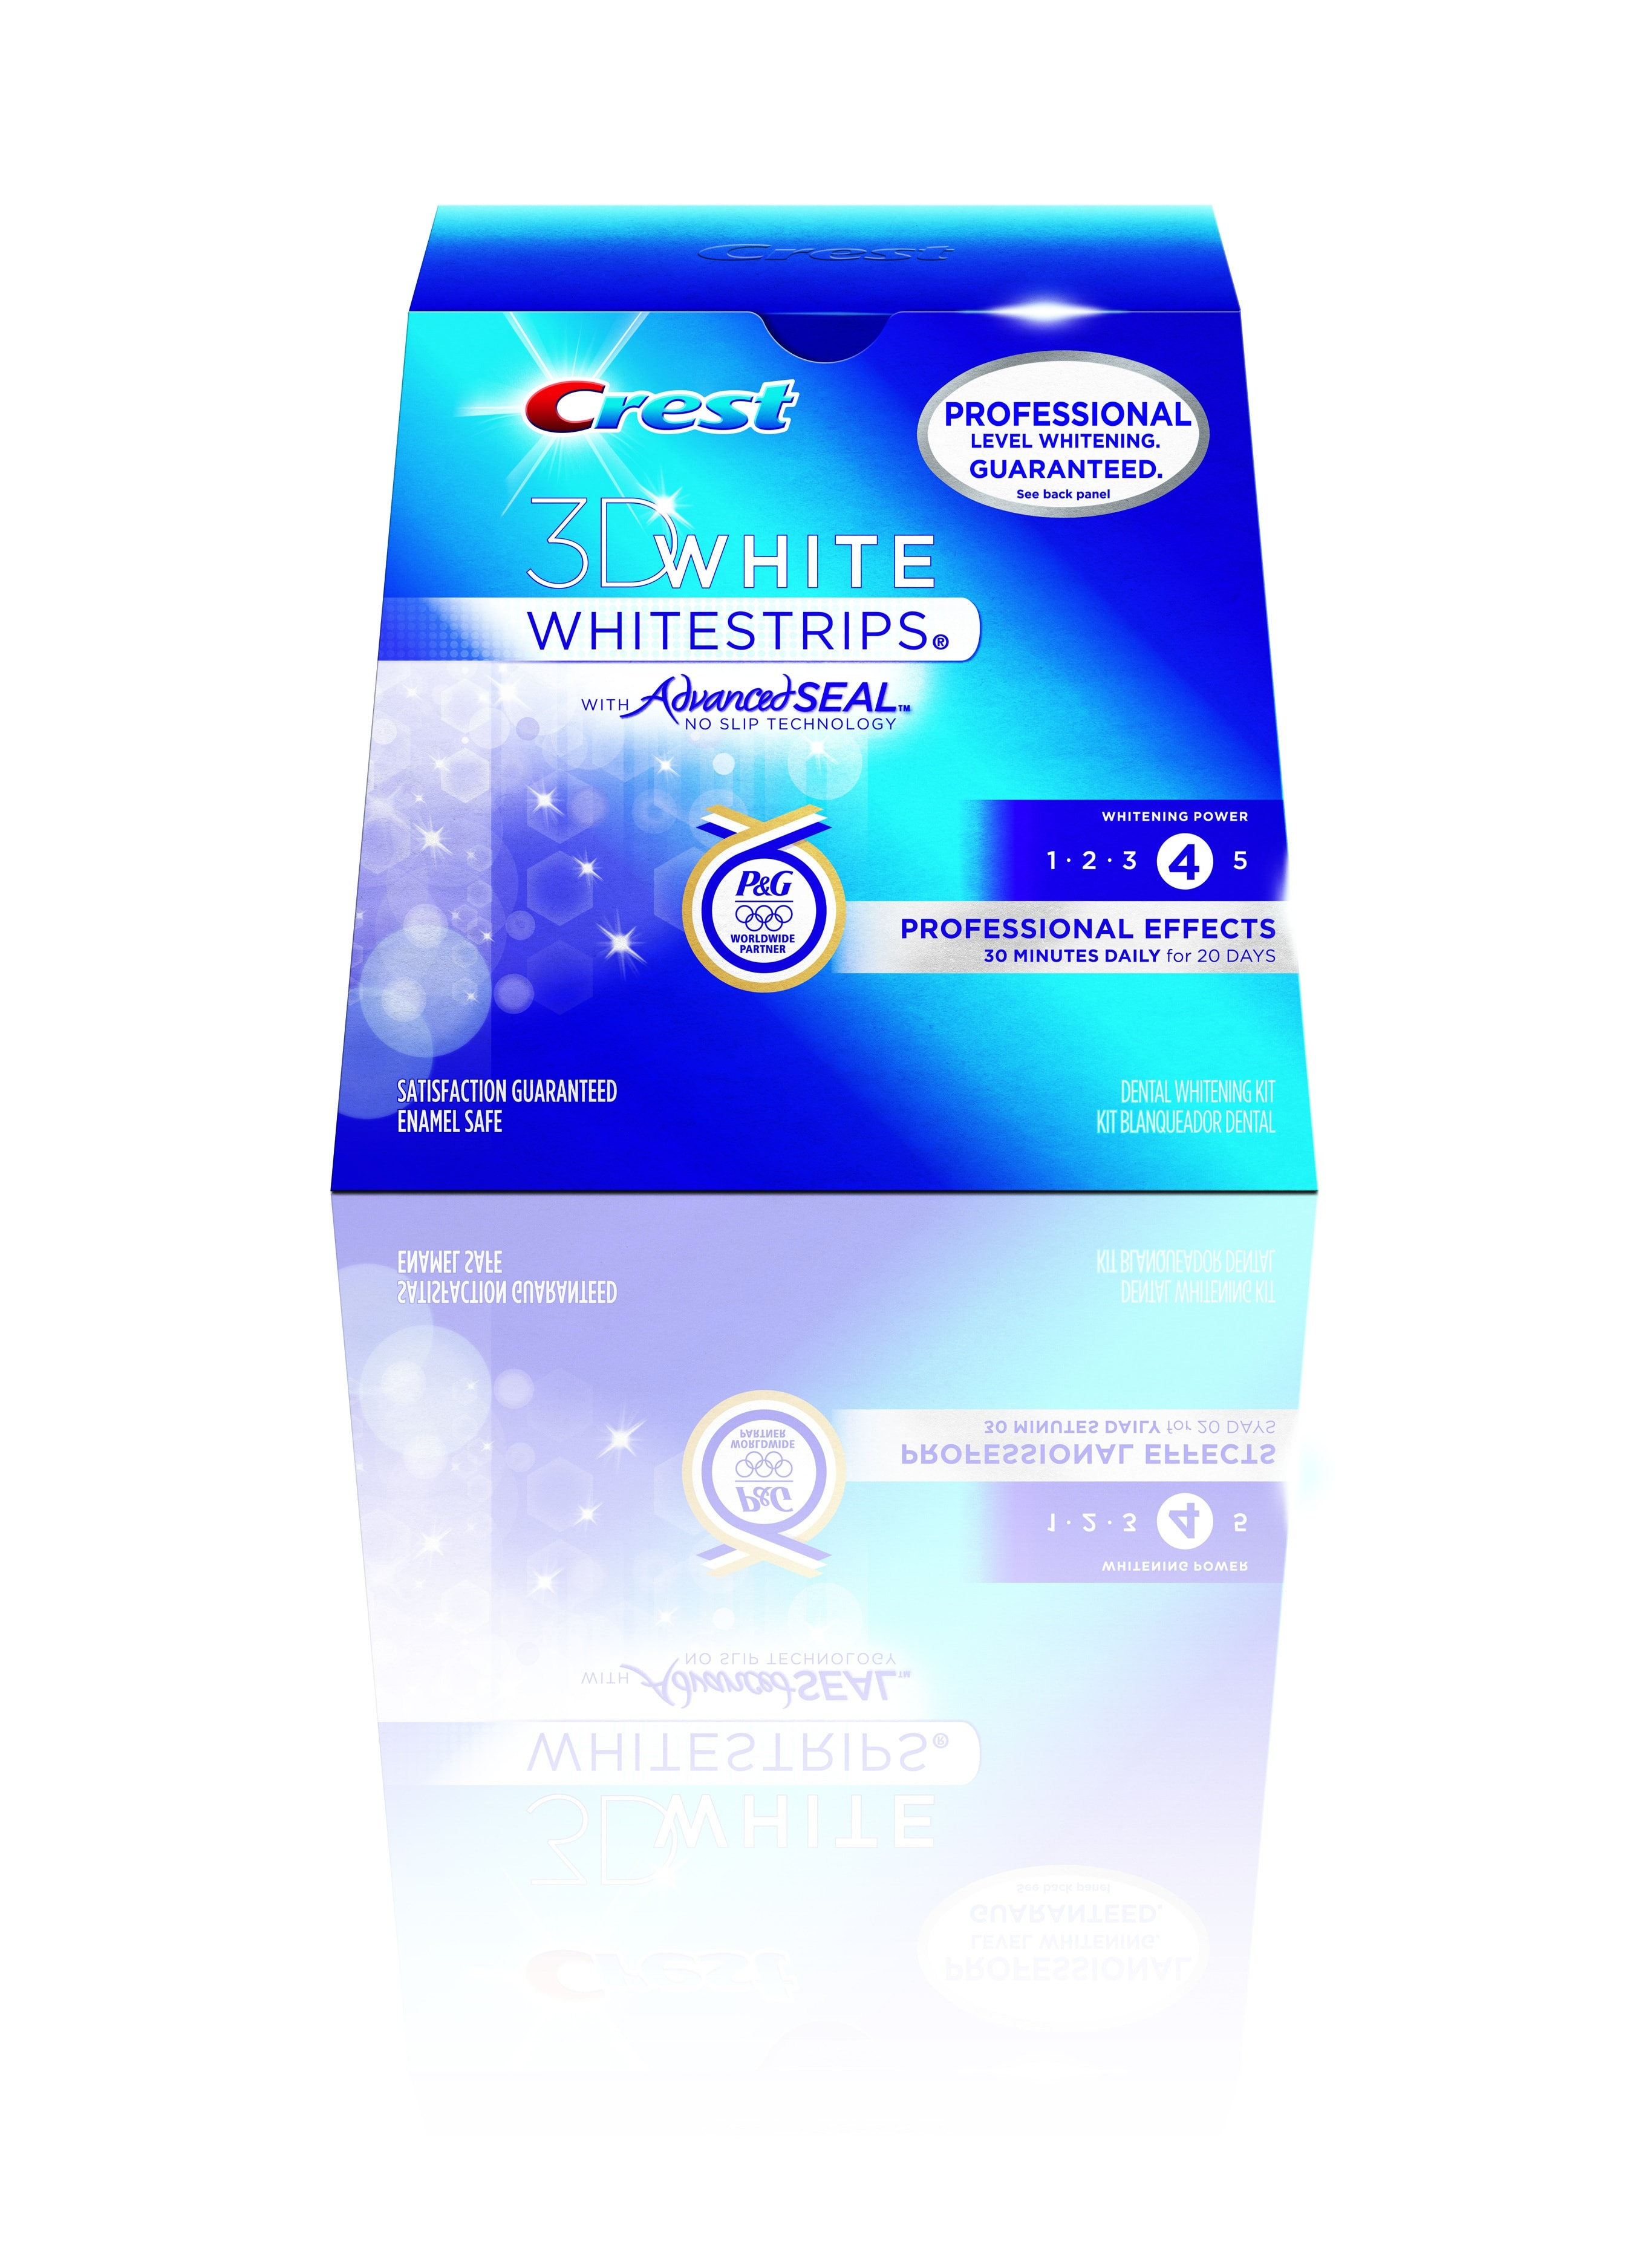 Crest 3D White Whitestrips product image